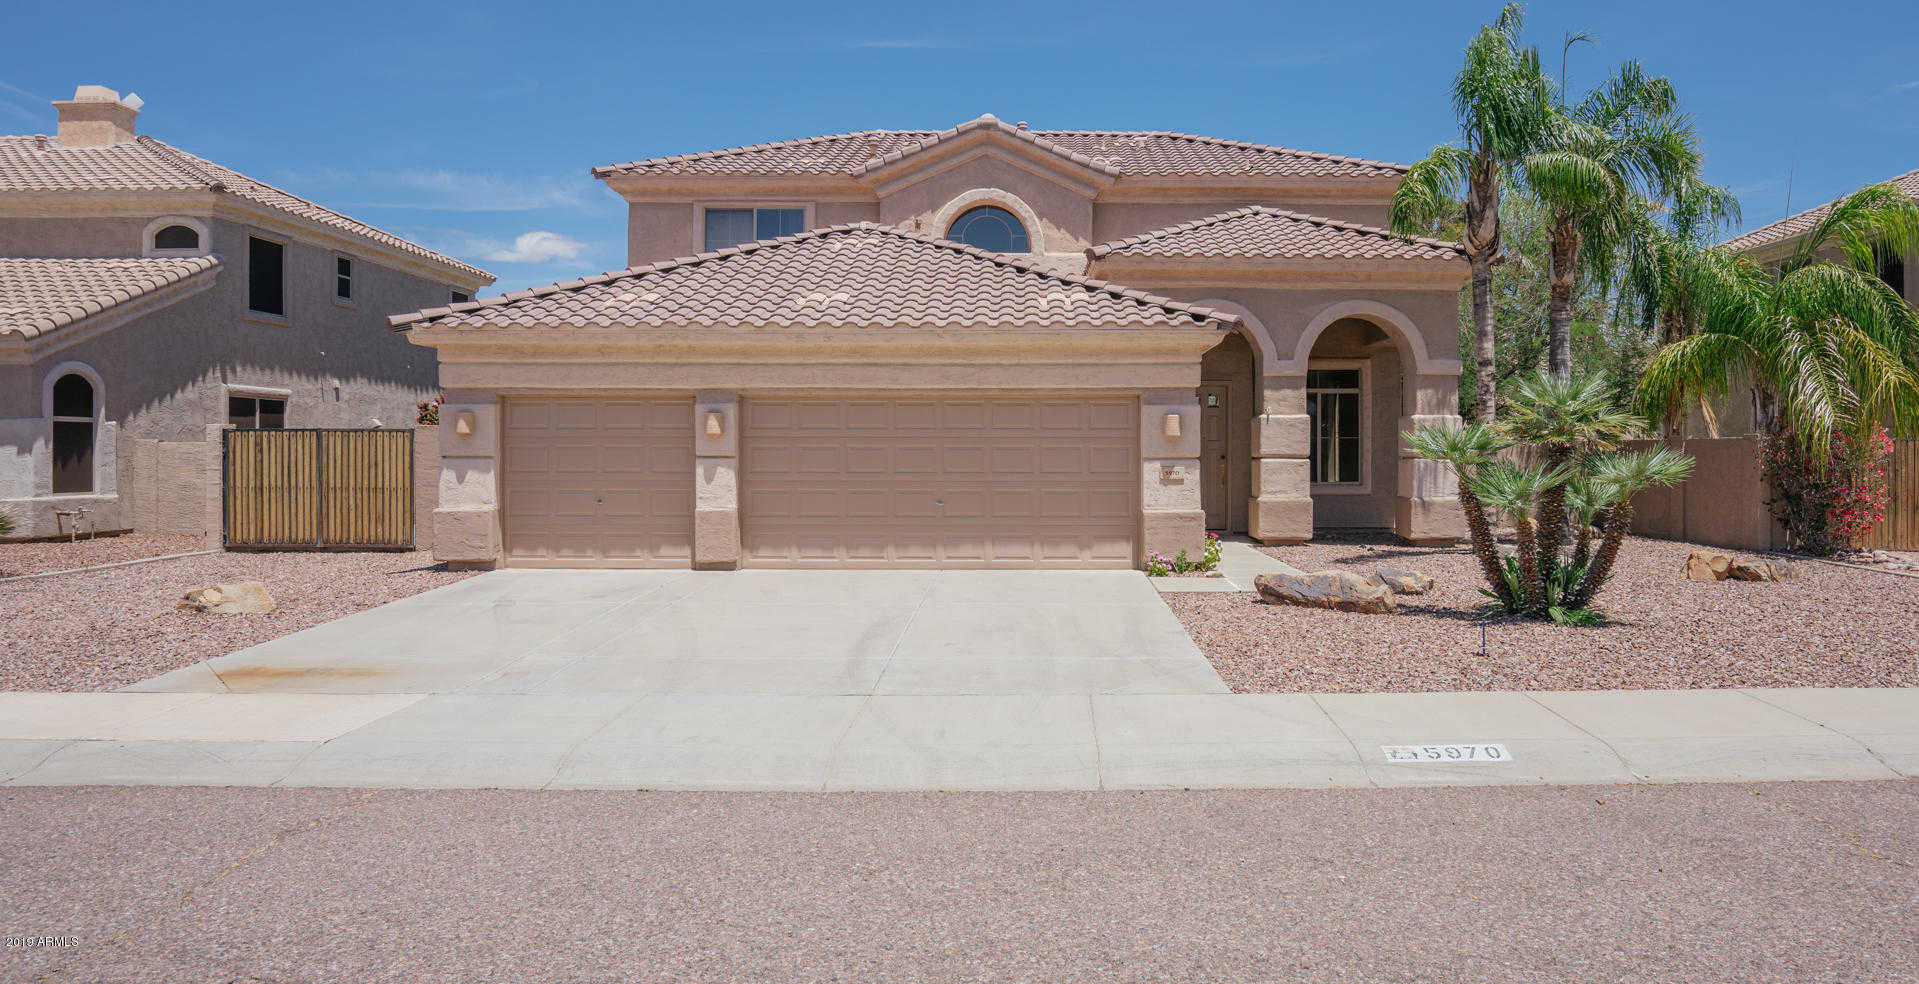 $357,000 - 4Br/3Ba - Home for Sale in Highlands At Arrowhead Ranch 3, Glendale